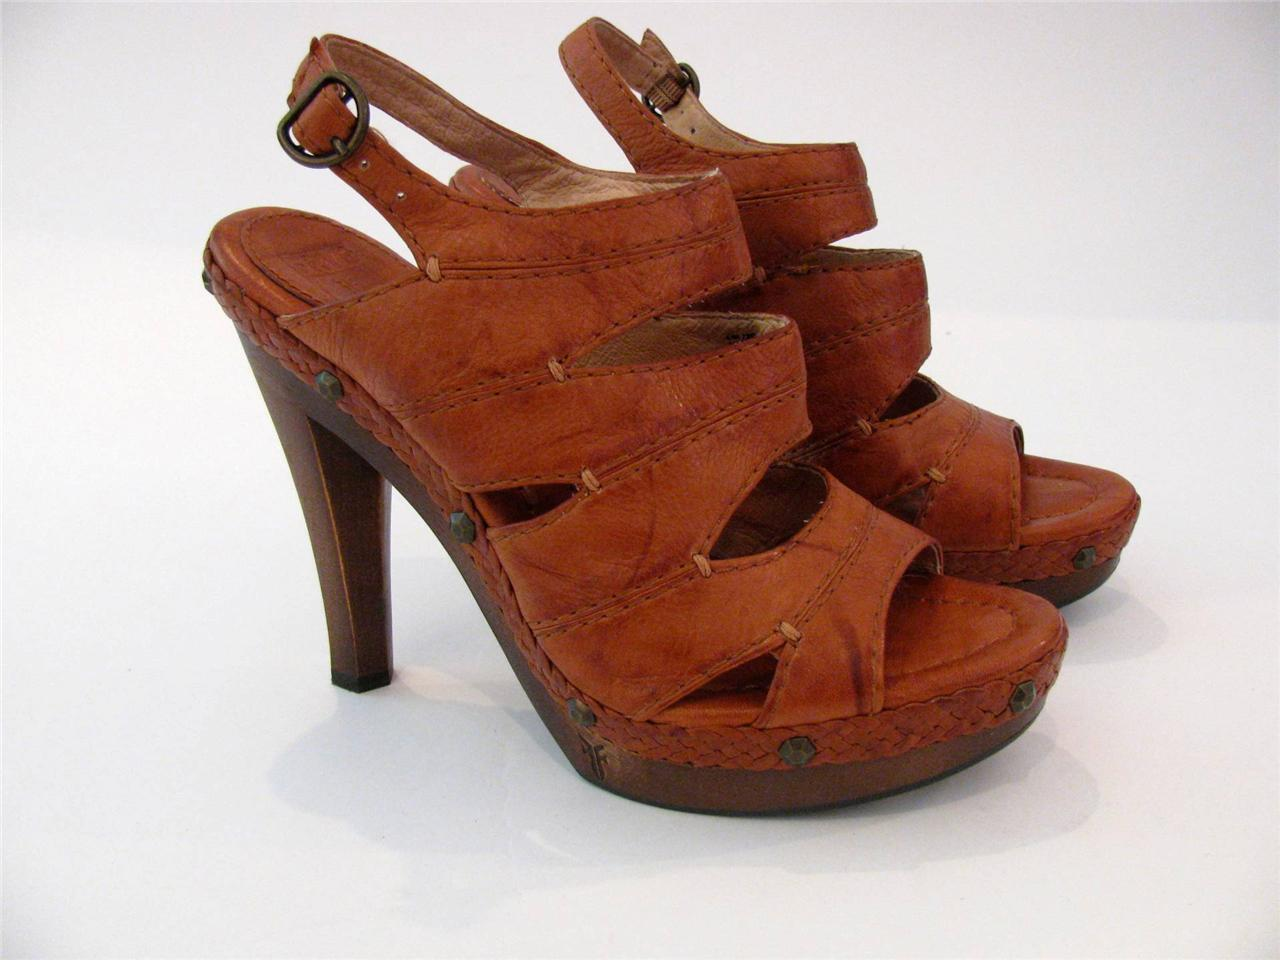 FRYE BROWN LEATHER HIGH WOODEN HEEL SEXY OPEN TOE STRAPPY SANDAL Schuhe8.5 M